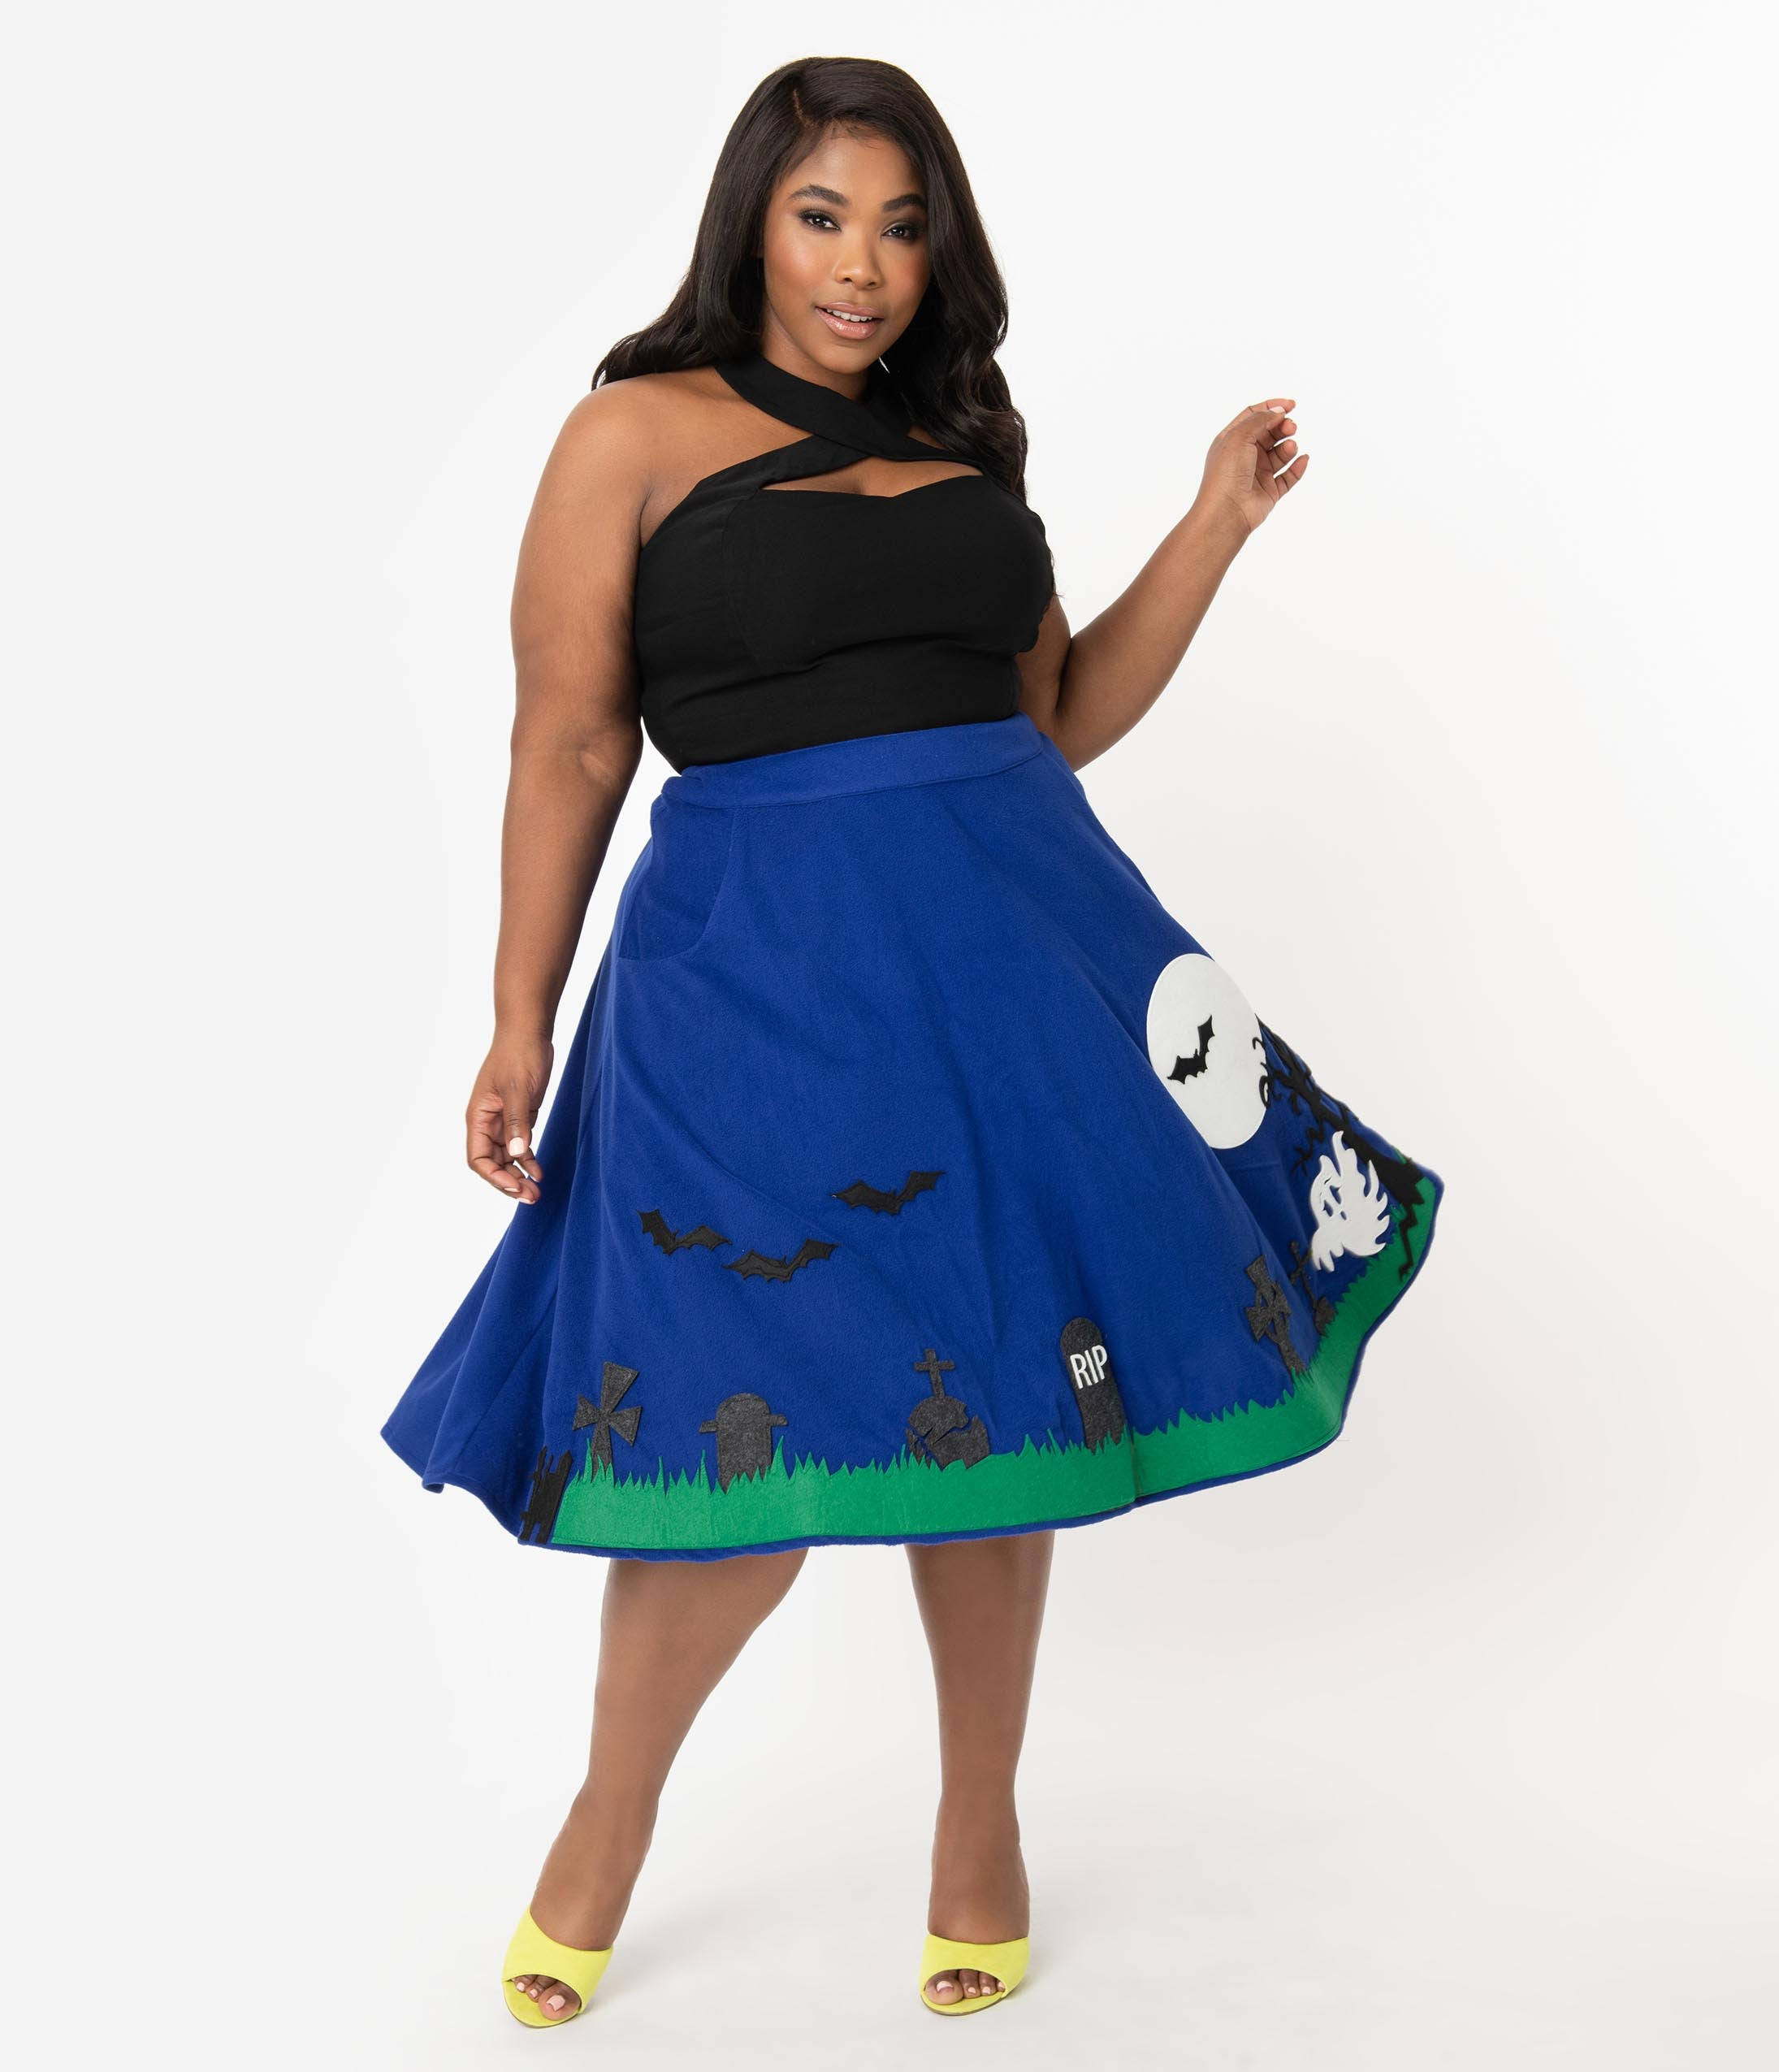 Vintage Retro Halloween Themed Clothing Unique Vintage Plus Size 1950S Blue Moonlit Graveyard Soda Shop Swing Skirt $78.00 AT vintagedancer.com